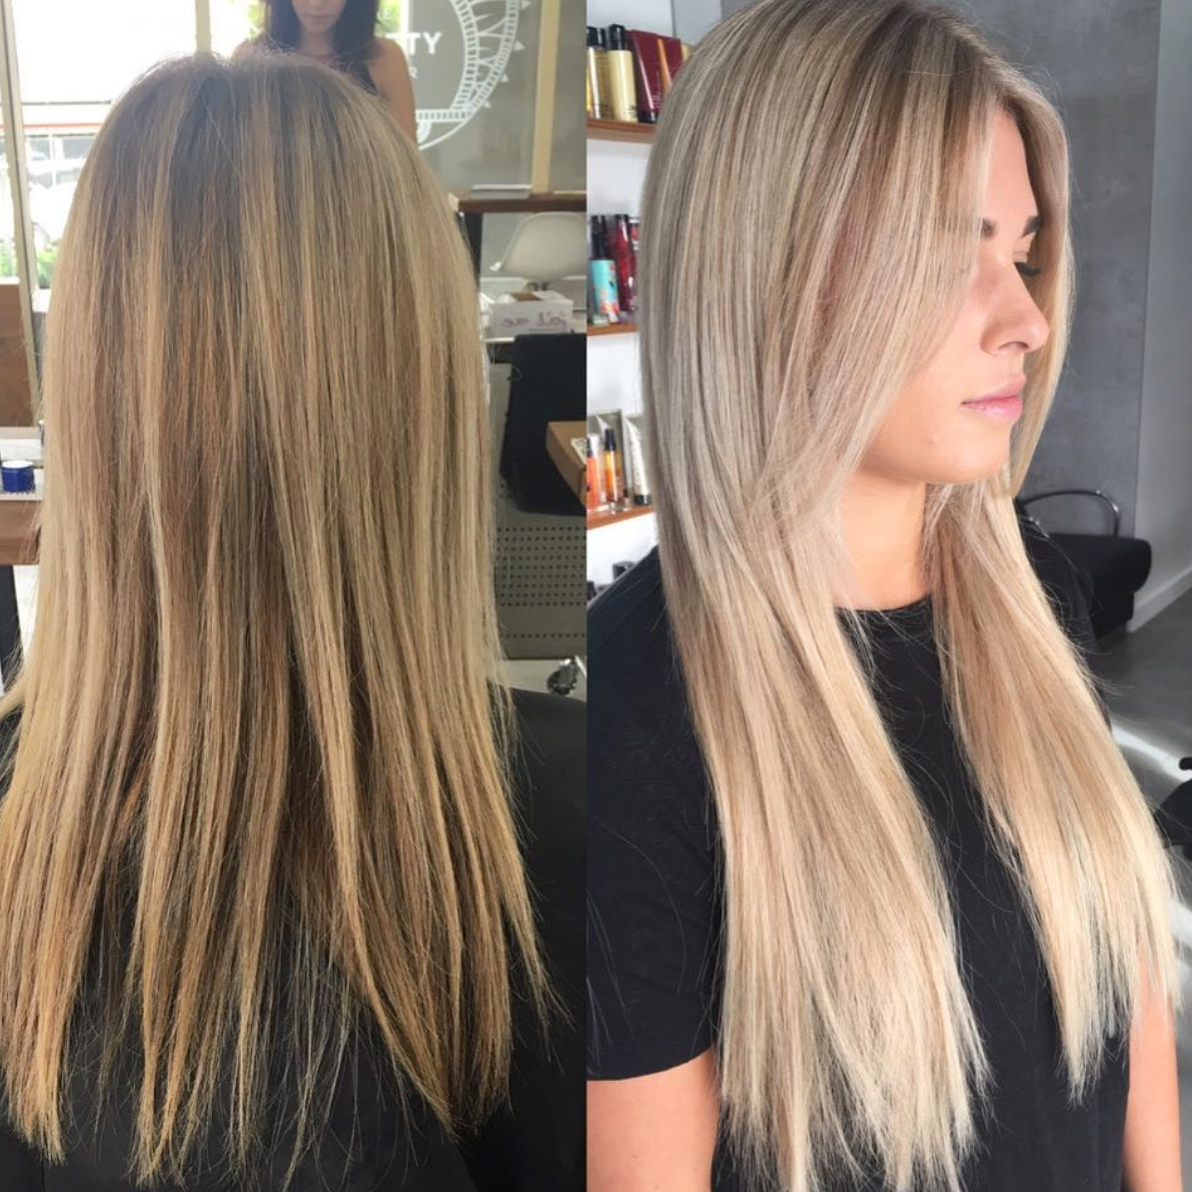 The Society For Hair Hair Extensions